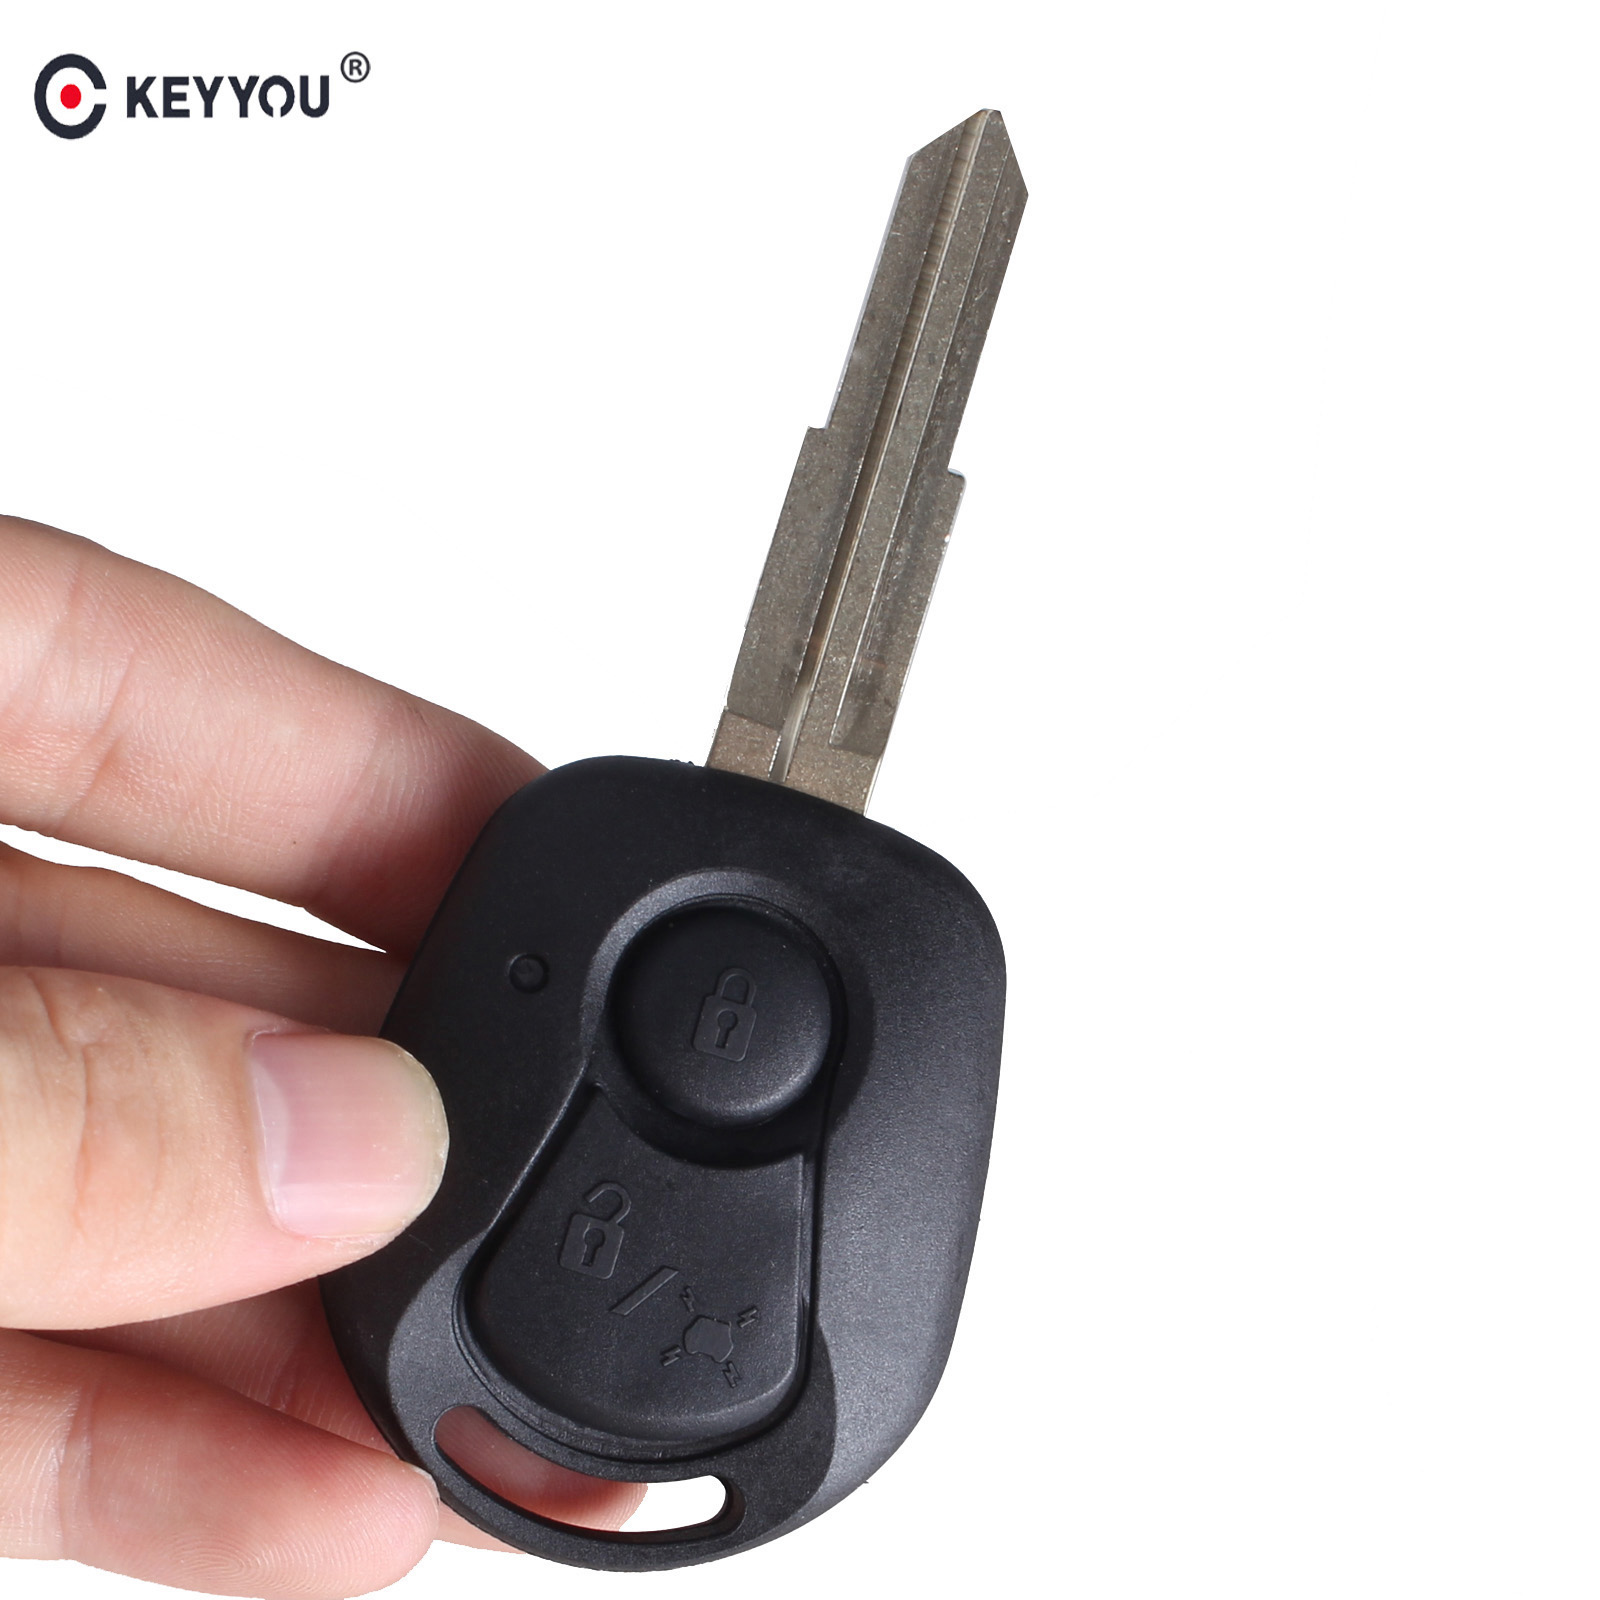 KEYYOU 2 BUTTONS REMOTE KEY SHELL FOR SSANGYONG ACTYON KYRON REXTON UNCUT BLADE KEY FOB COVER CASE REPLACEMENTKEYYOU 2 BUTTONS REMOTE KEY SHELL FOR SSANGYONG ACTYON KYRON REXTON UNCUT BLADE KEY FOB COVER CASE REPLACEMENT